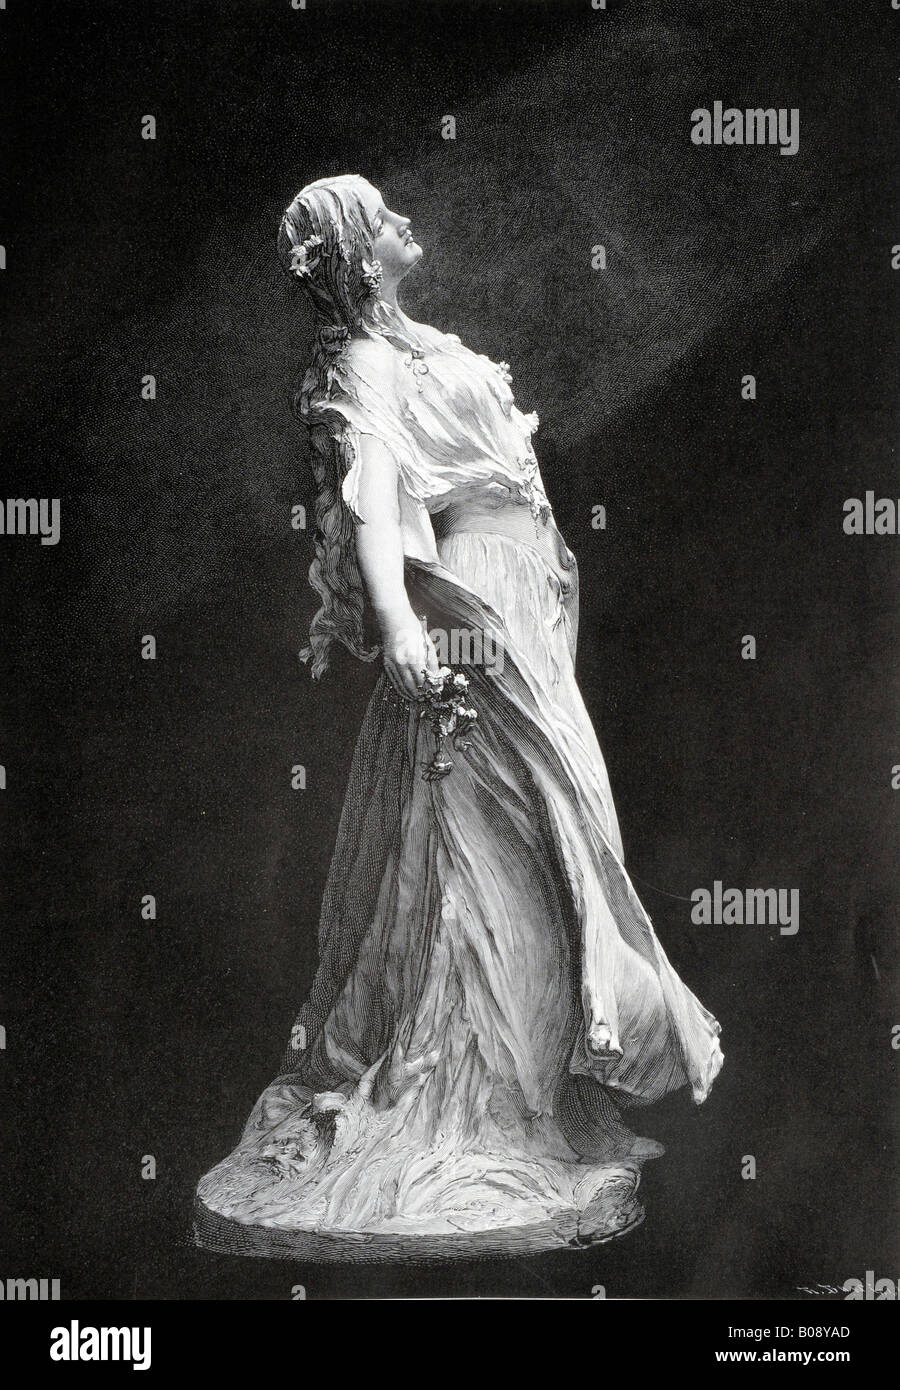 'Ophelie, ' woodcut depicting Ophelia from 'Moderne Kunst in Meisterholzschnitten' 1903 - Stock Image